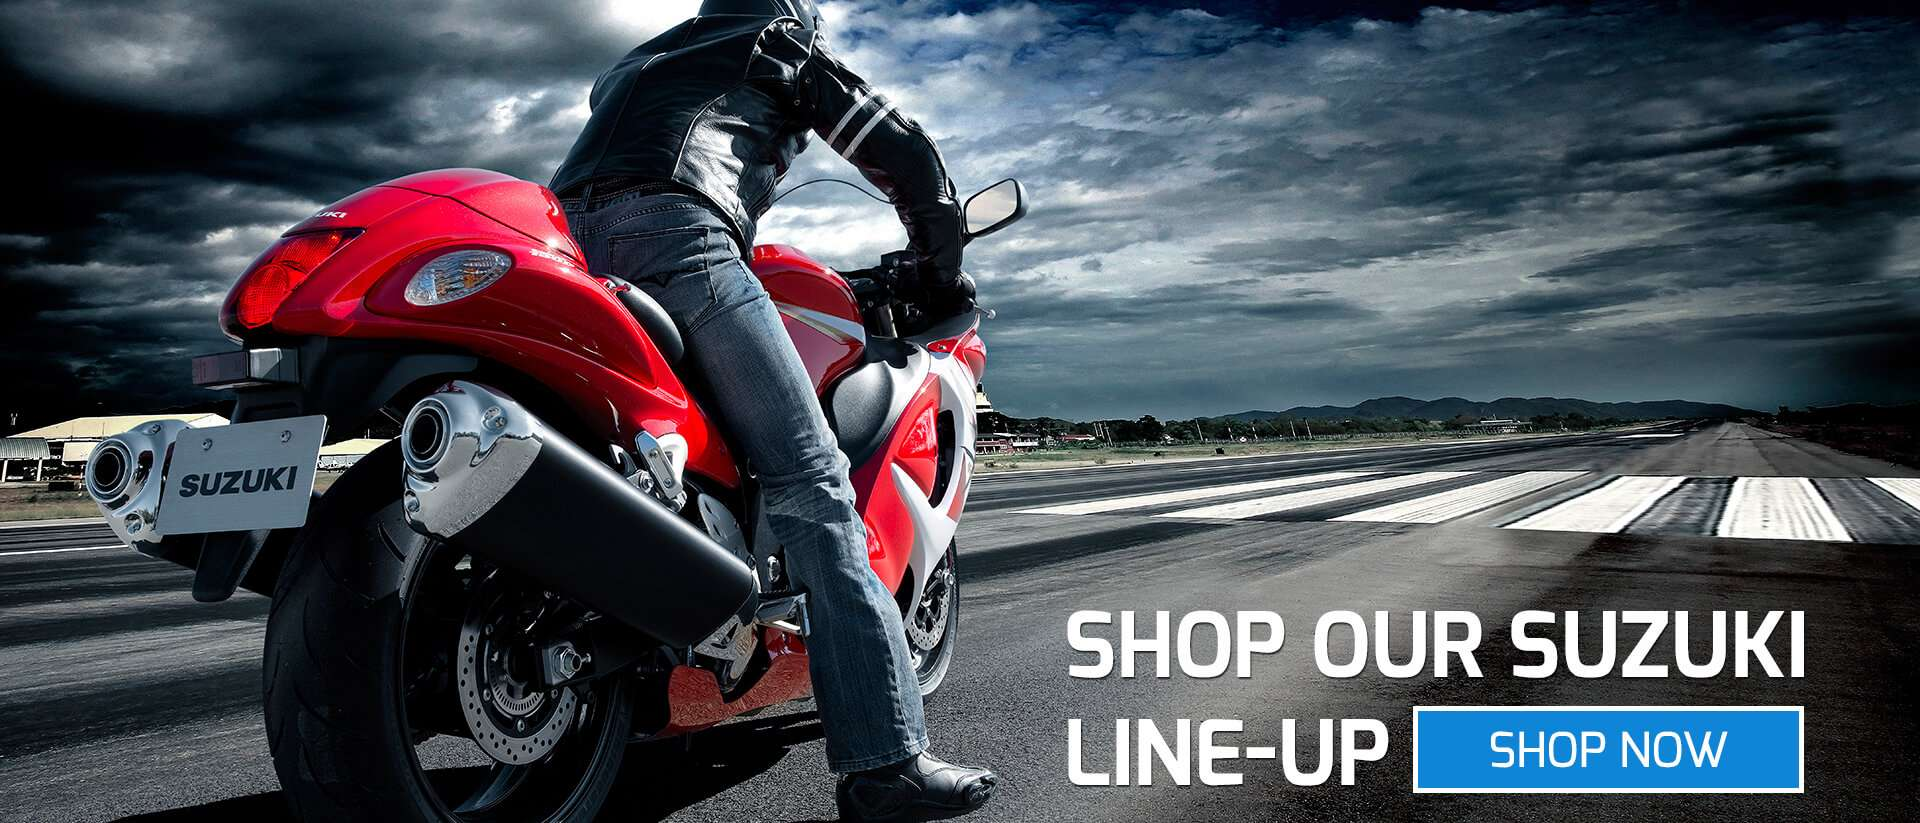 Shop Suzuki at Doug Reynolds of Little Rock